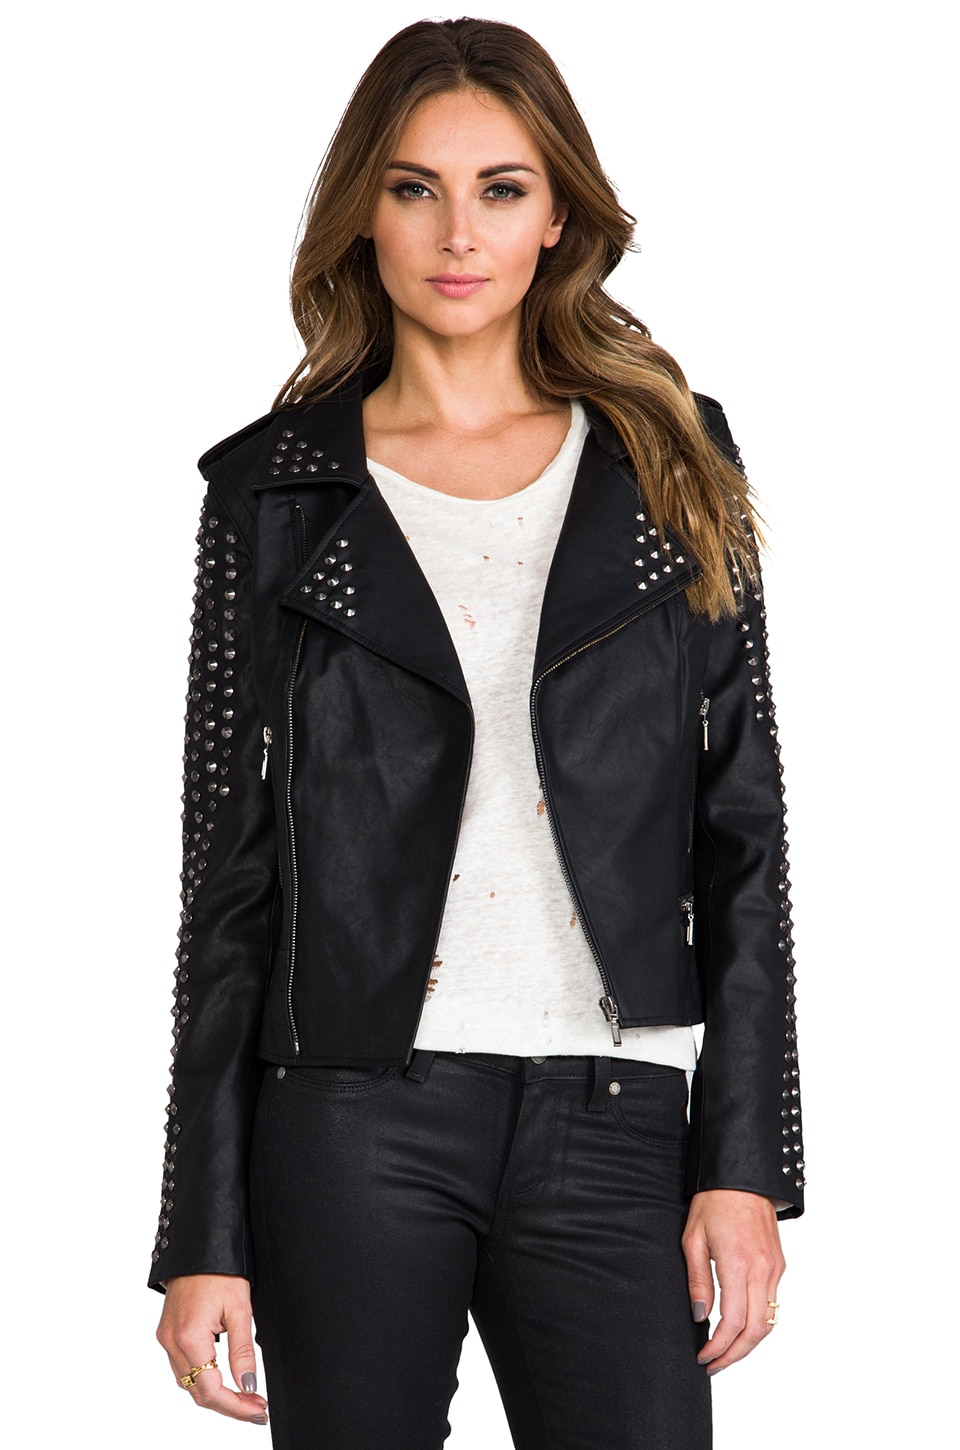 Lovers + Friends REVOLVE Exclusive Rhona Embellished Vegan Leather Jacket in Black